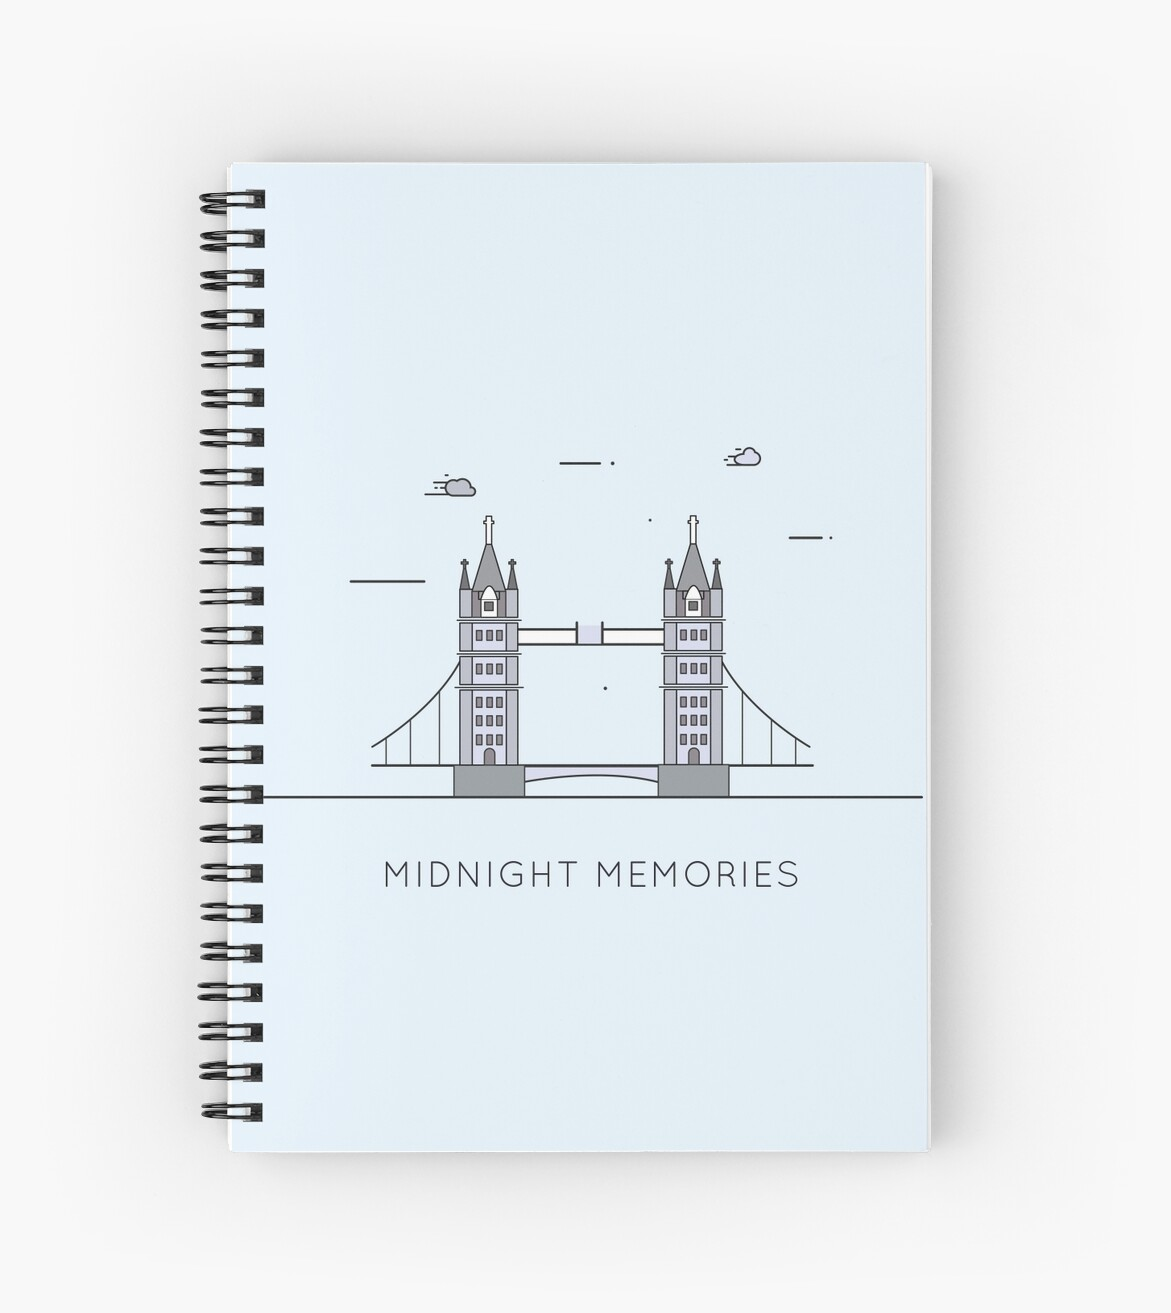 Midnight Memories by kingstylinson